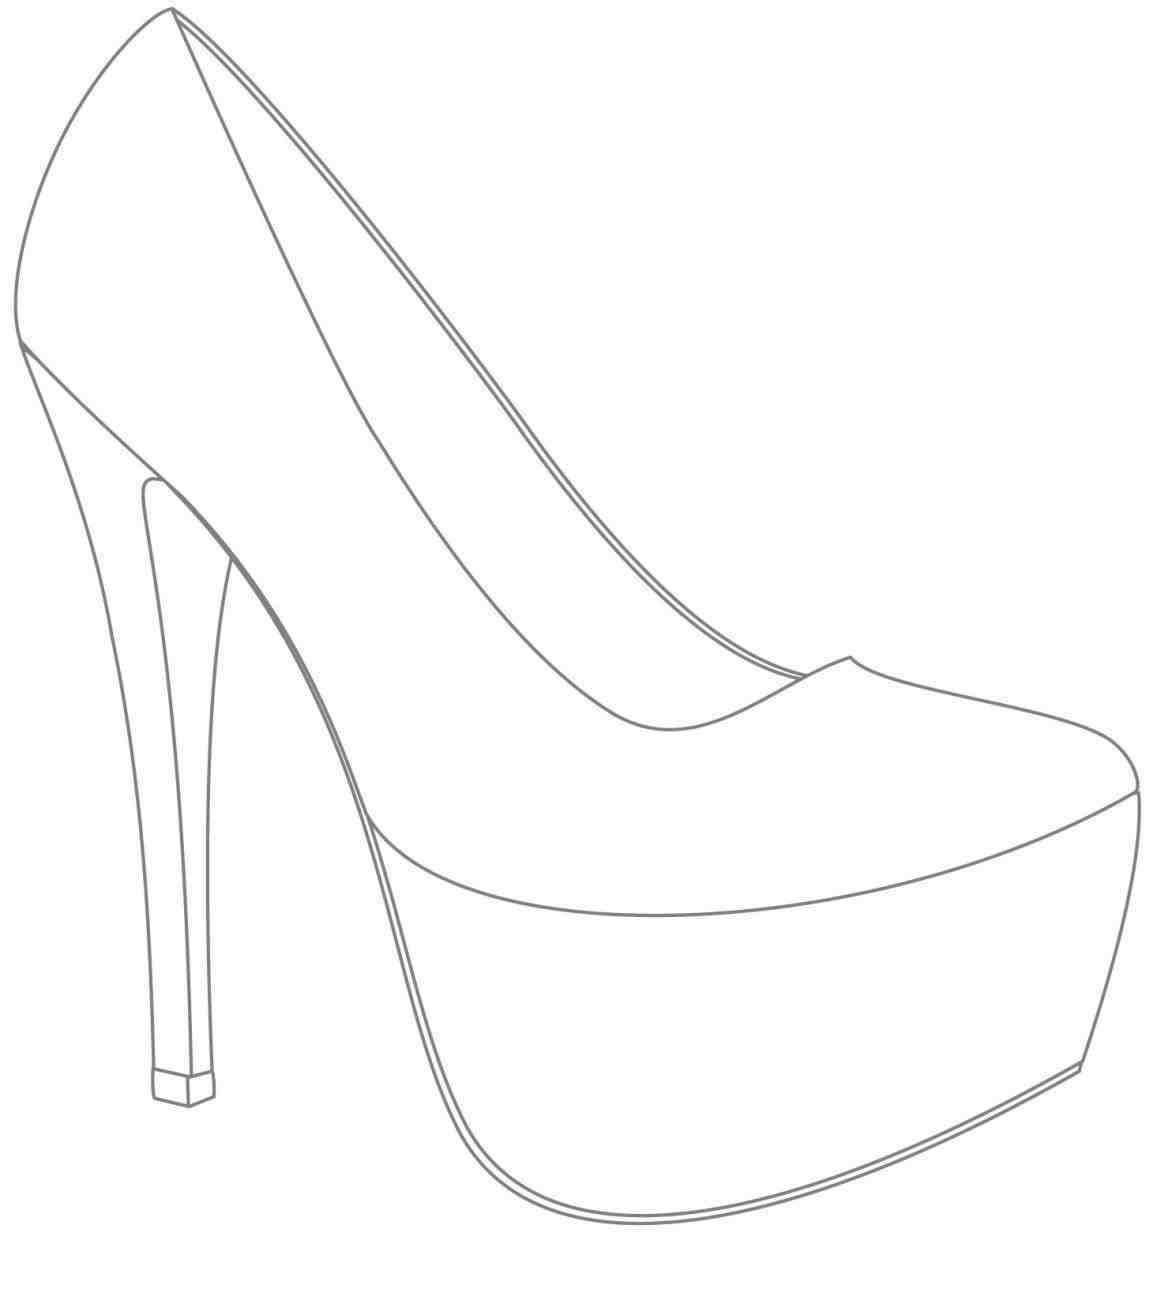 High Heel Drawing Template At Paintingvalley | Explore With High Heel Template For Cards